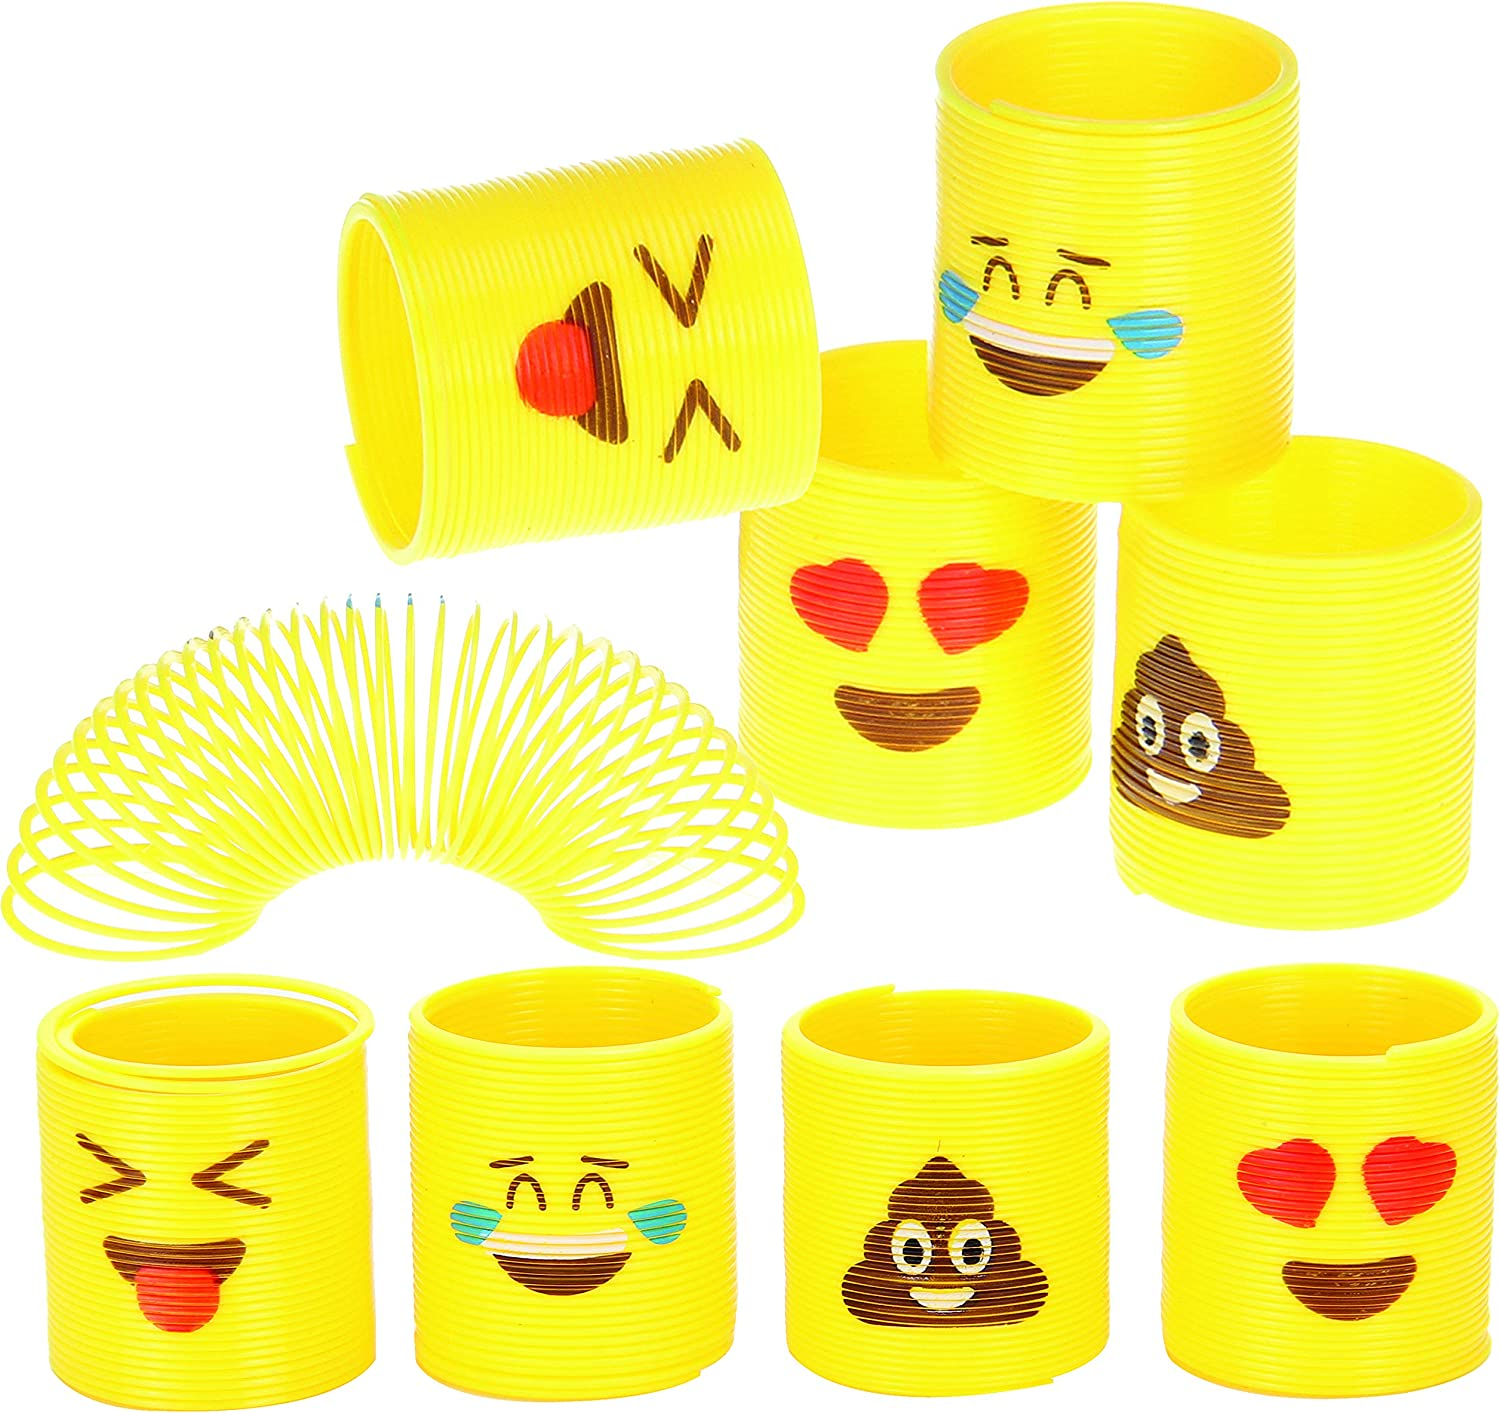 Totem World 24 Assorted Miniature Coil Emoji Springs - Multiple Faces - Perfect Size Kids - Bright Colors Durable Designs - Awesome As Birthday Party Favors, Easter Piñata Fillers Stocking Stuffers